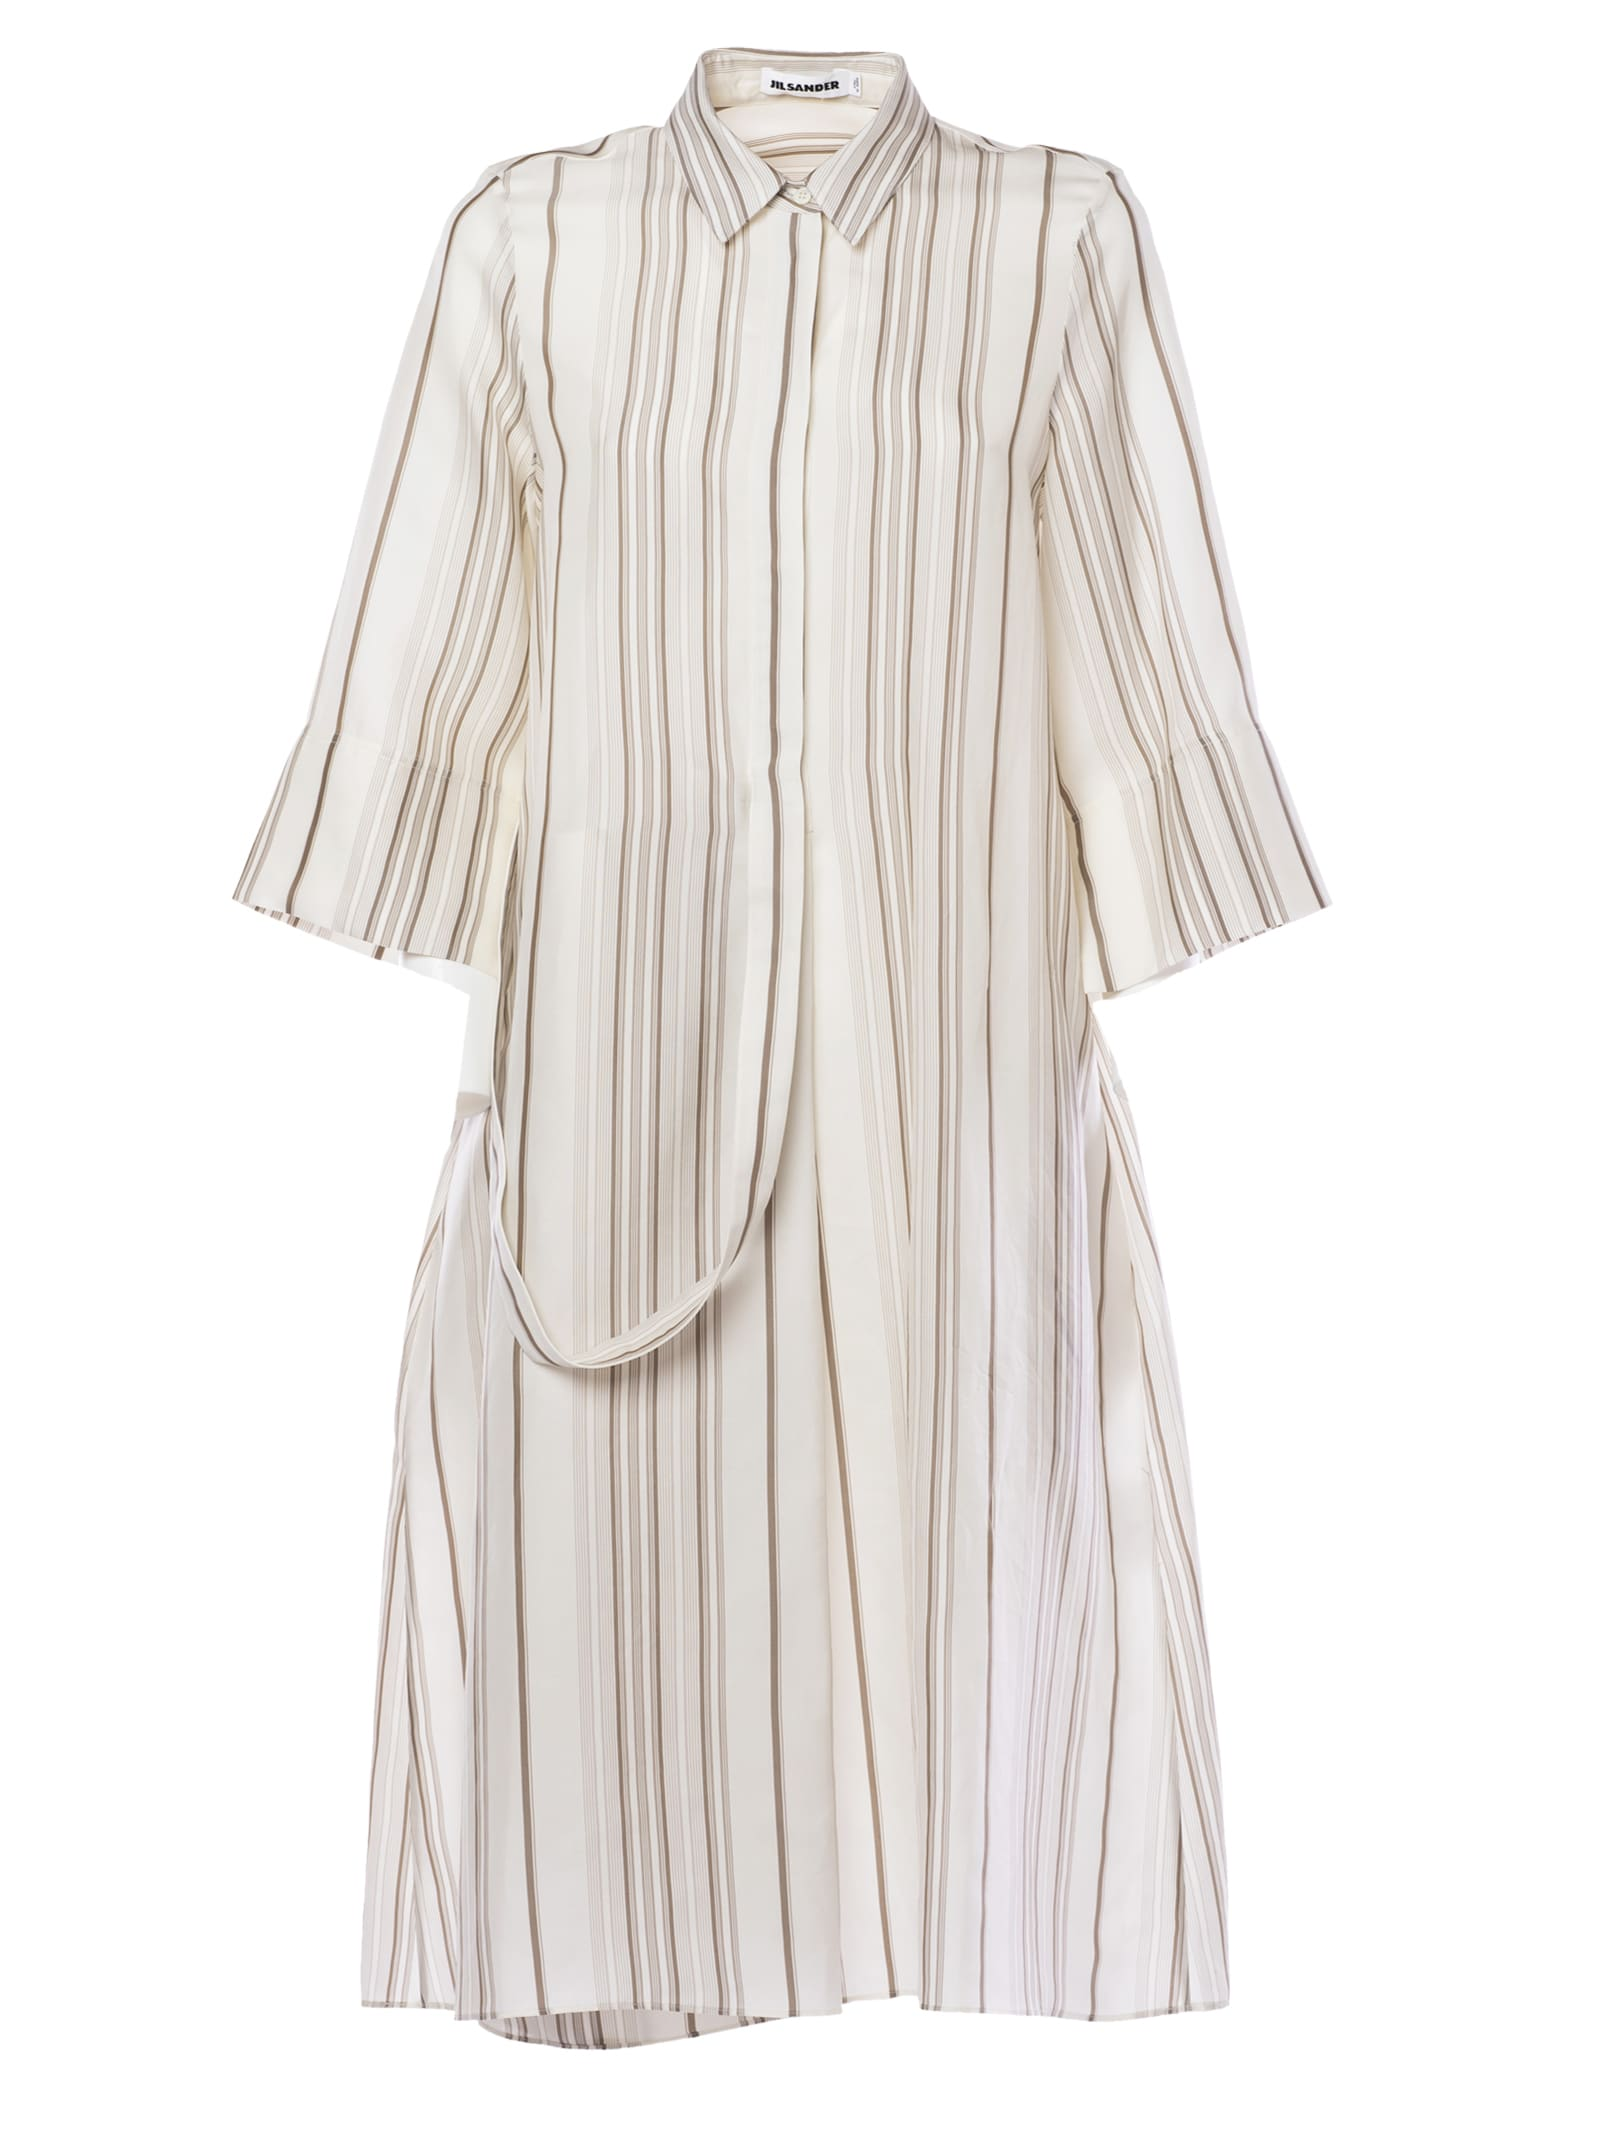 Jil Sander Striped Shirt Dress